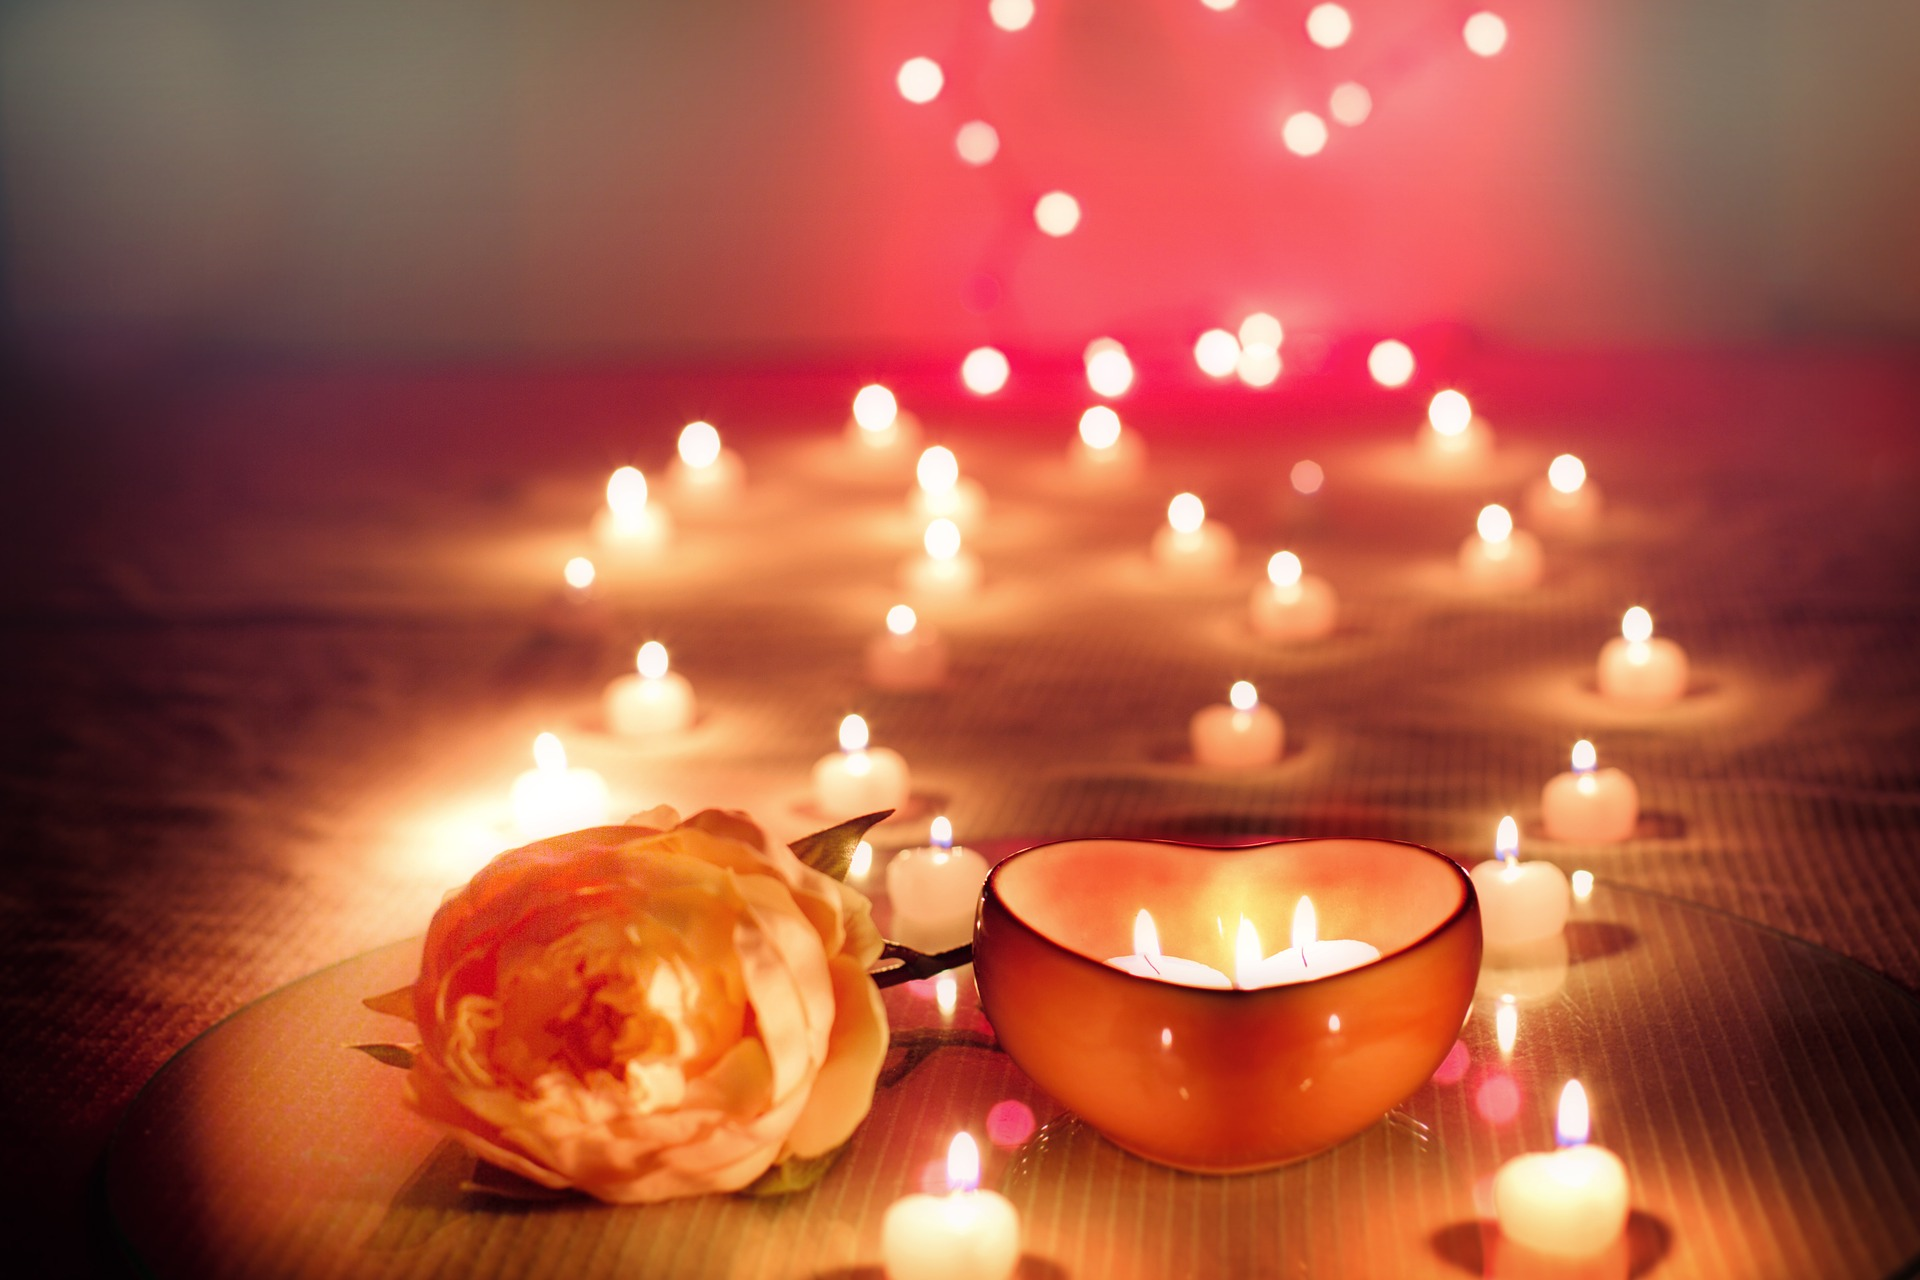 Candles 2000135 1920